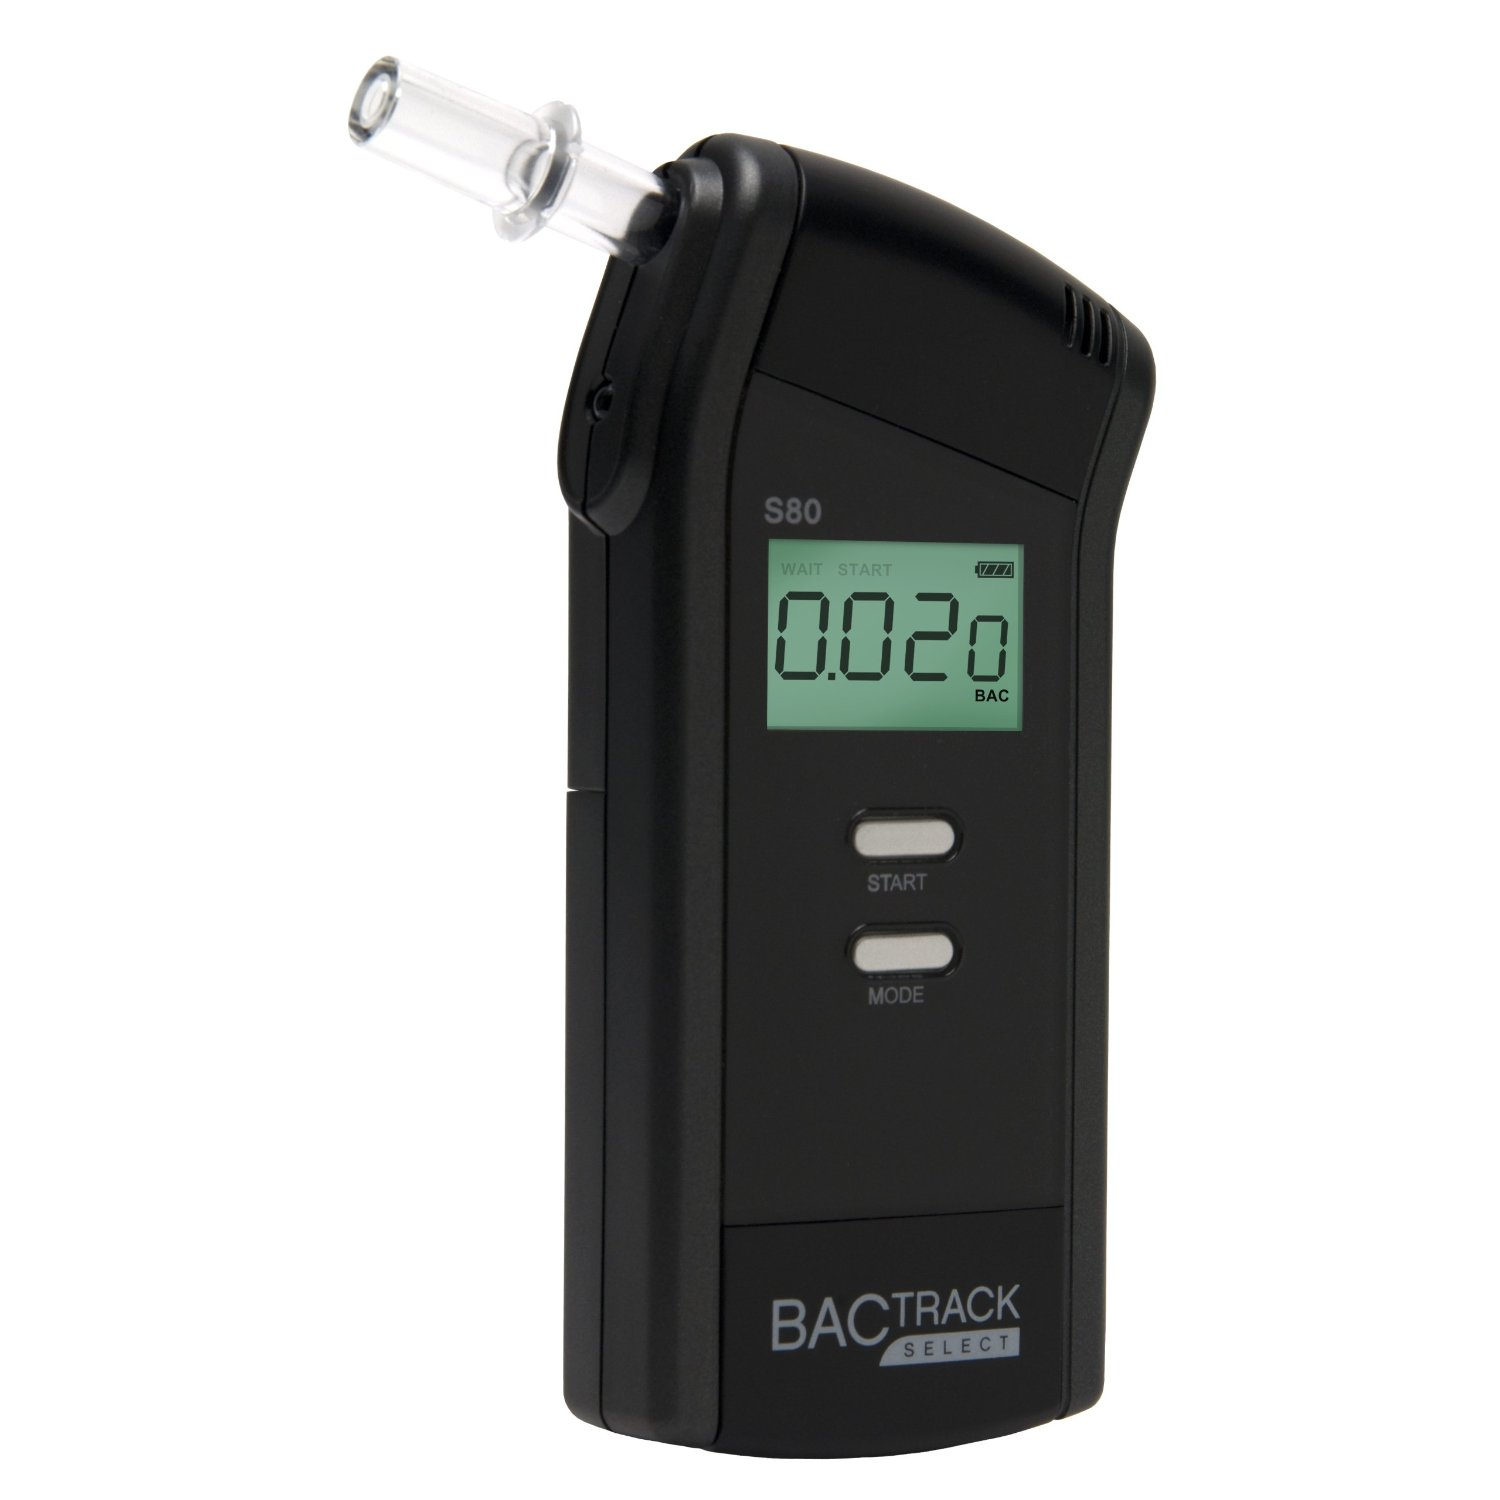 BACtrack S80 Pro Breathalyzer Portable Breath Alcohol Tester